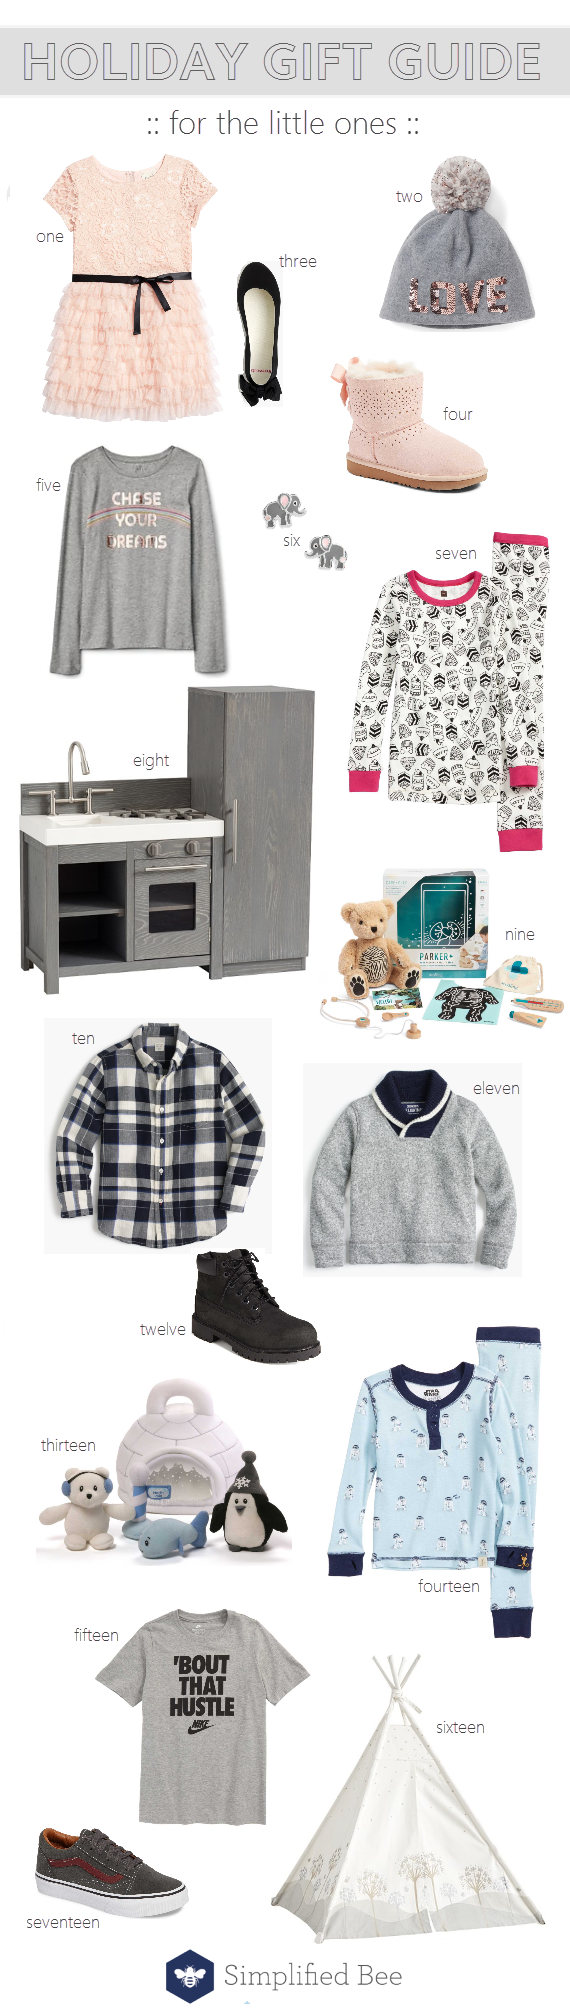 holiday gift guide for kids // @simplifiedbee #kidsgifts #giftguide #kids #holidaygifts #christmas